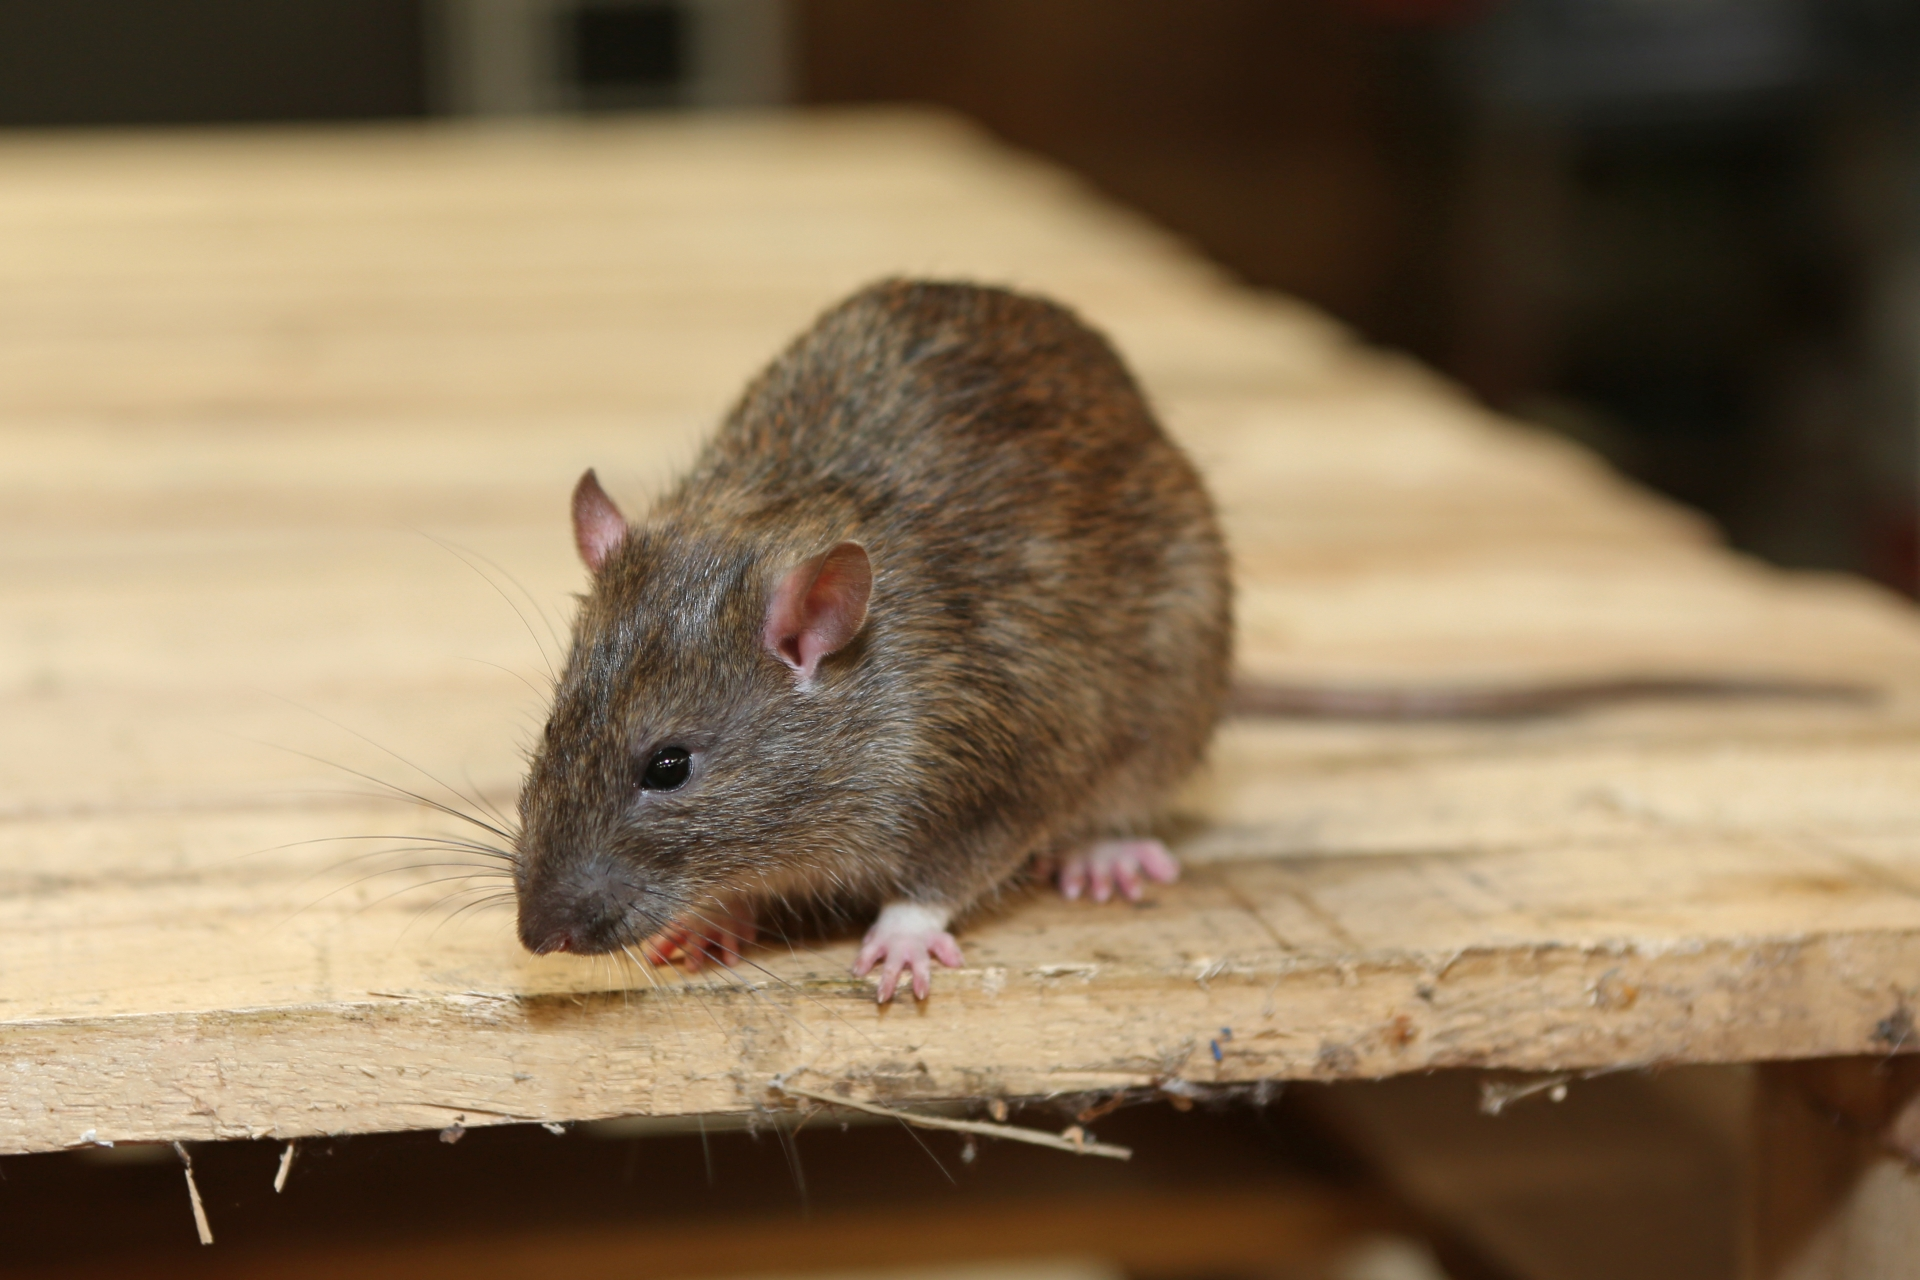 Rat Control, Pest Control in Esher, Claygate, KT10. Call Now 020 8166 9746